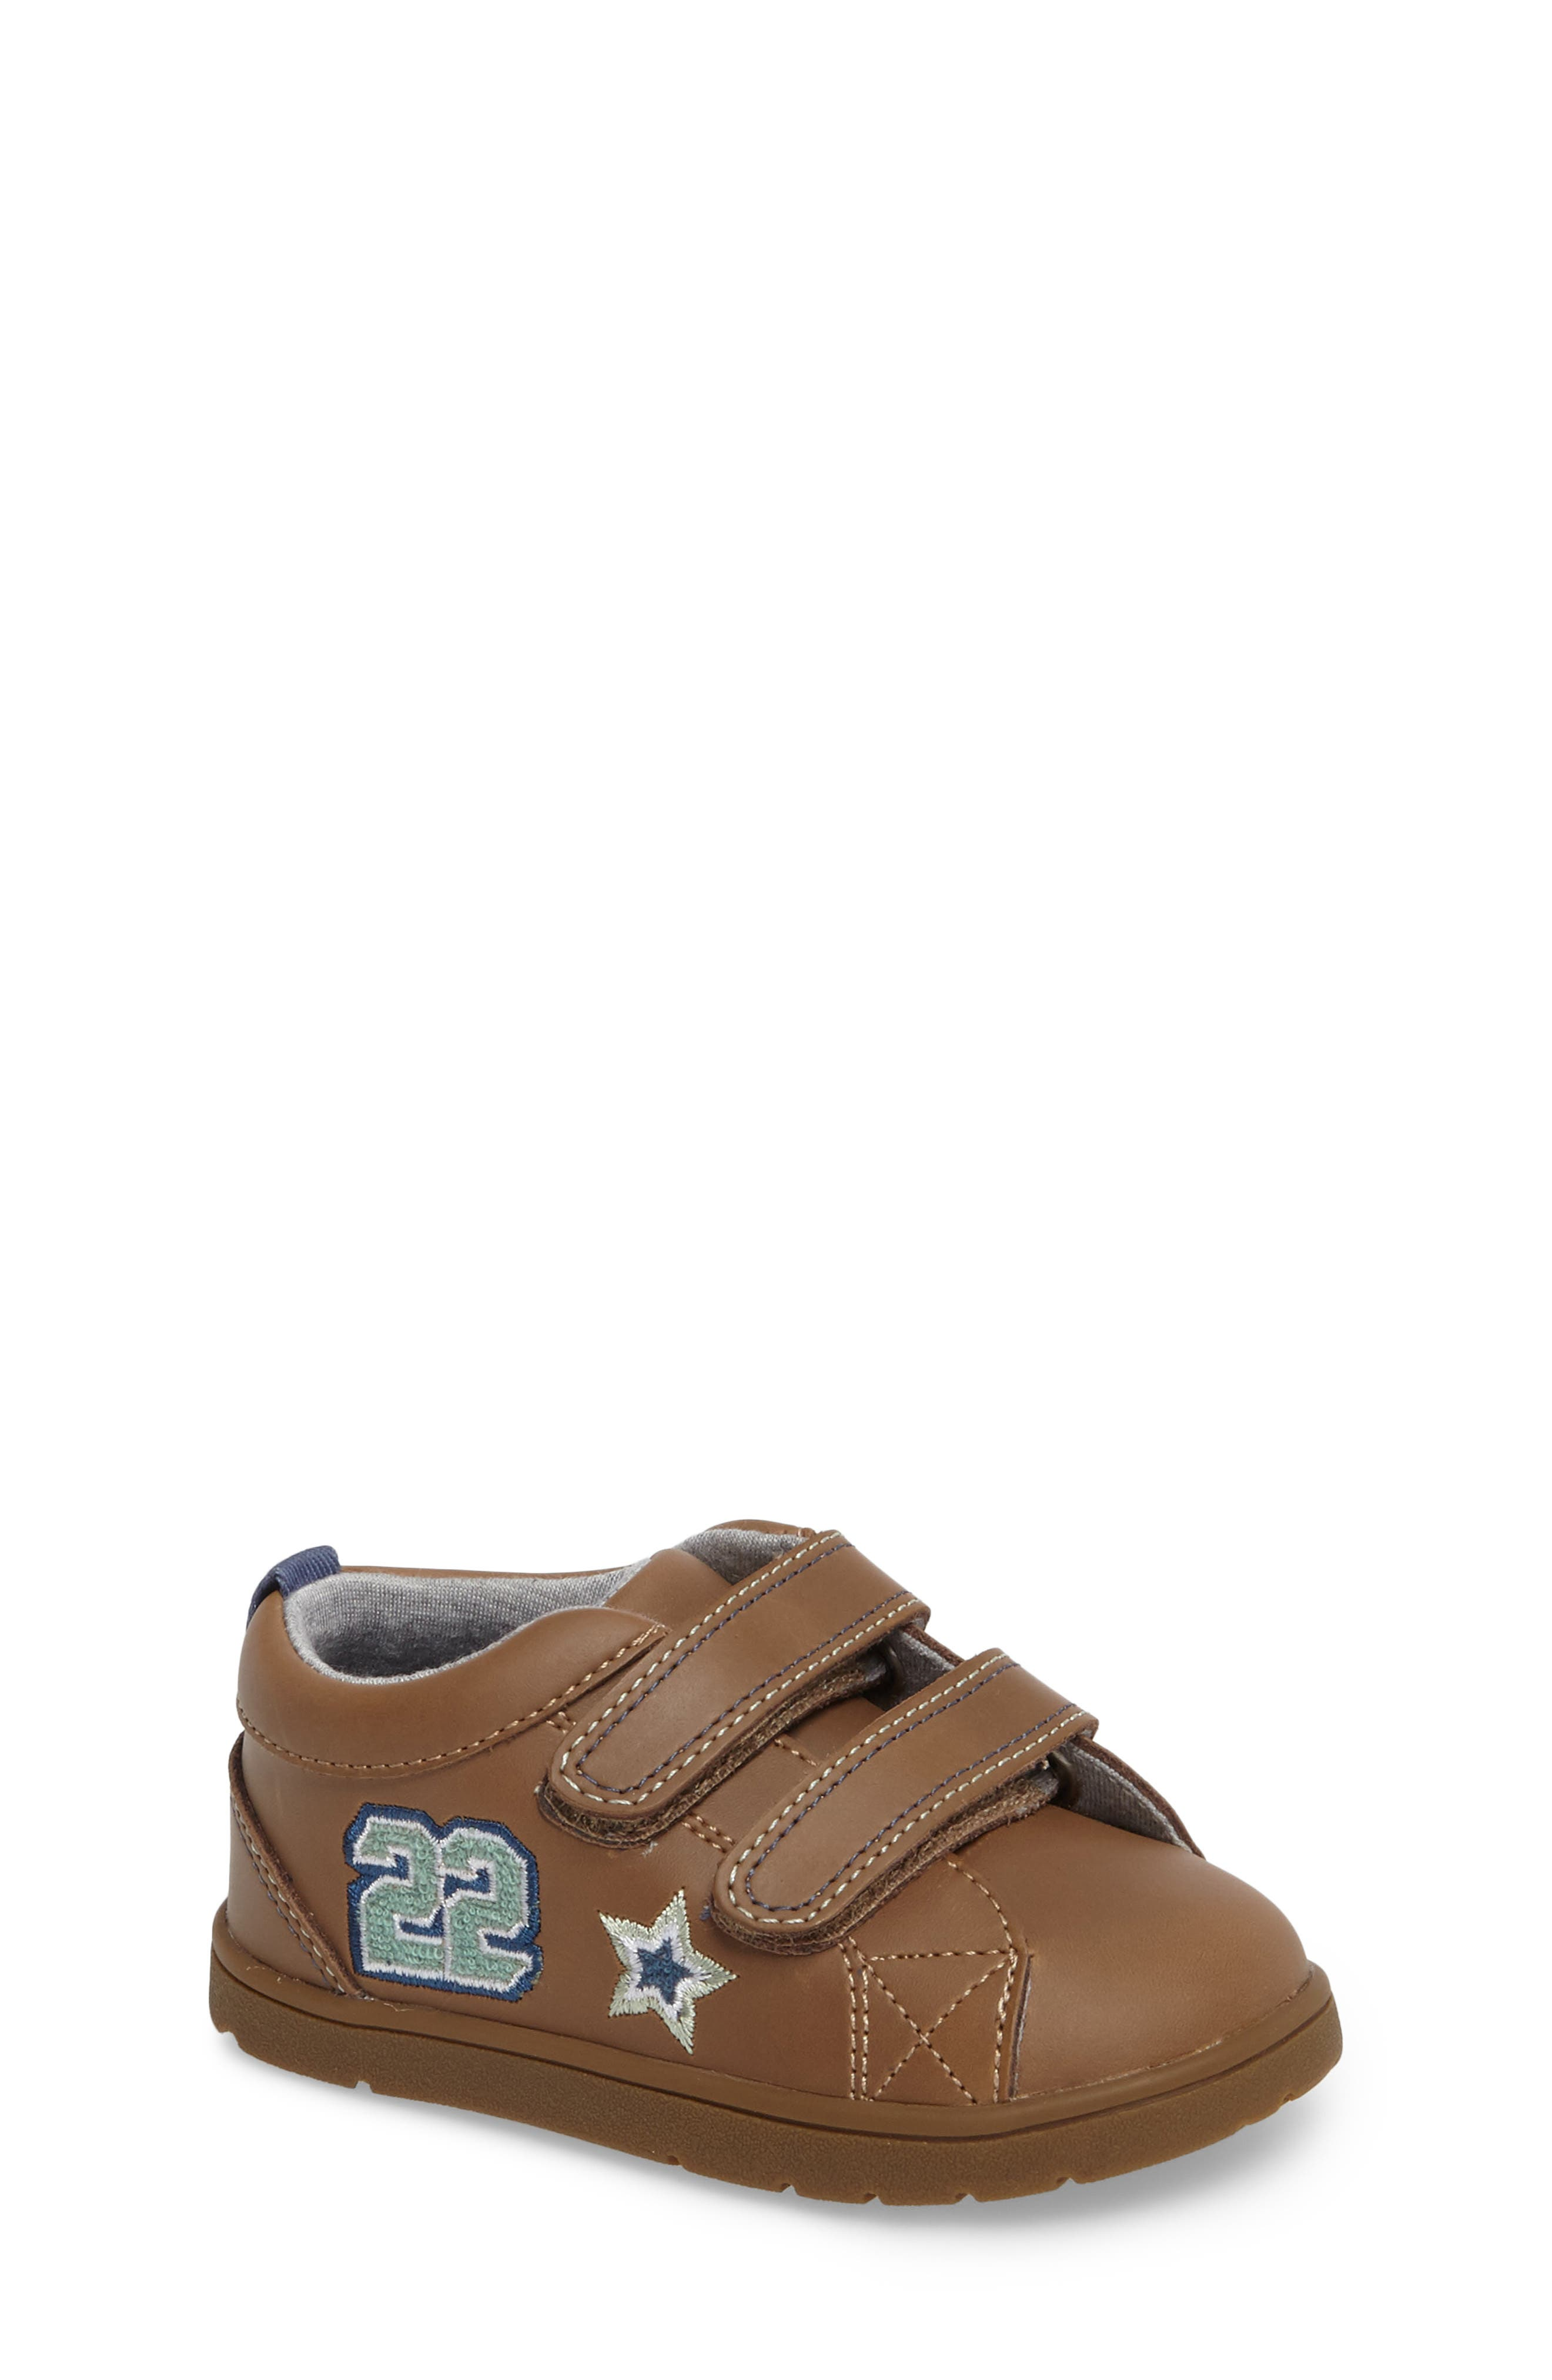 Alternate Image 1 Selected - Tucker + Tate Conner Embroidered Sneaker (Baby, Walker & Toddler)